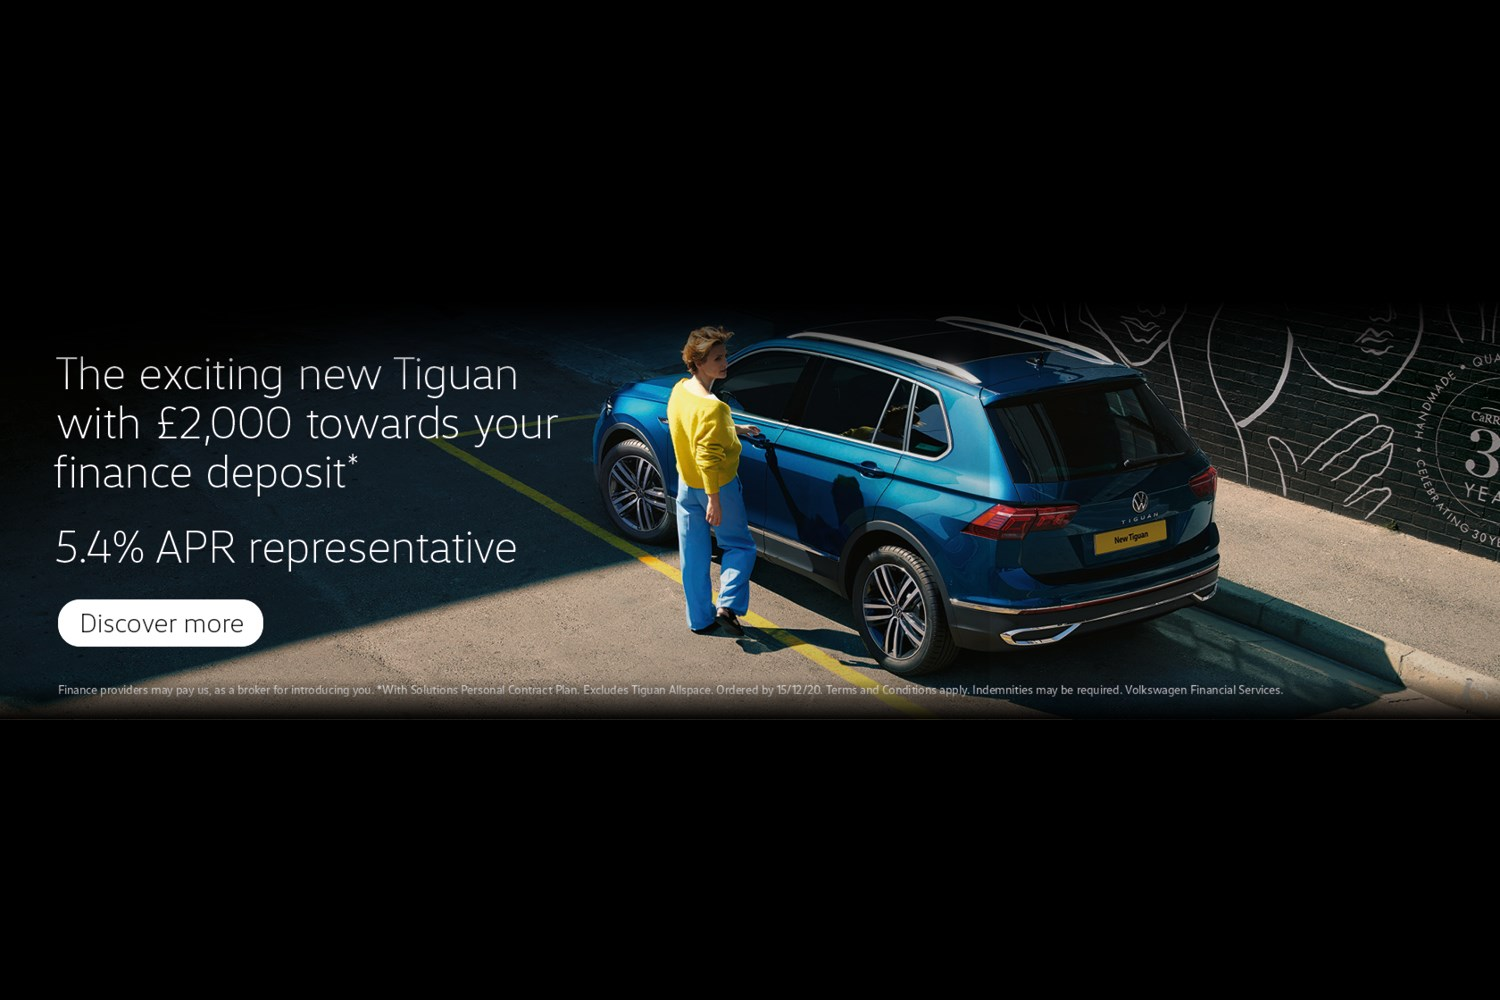 A bleu tiguan parked next to a kerb in a yellow marked parking bay. The wall bordering the pavement has hand prints on it and a women in a yellow top and blue trousers is going to open the car door